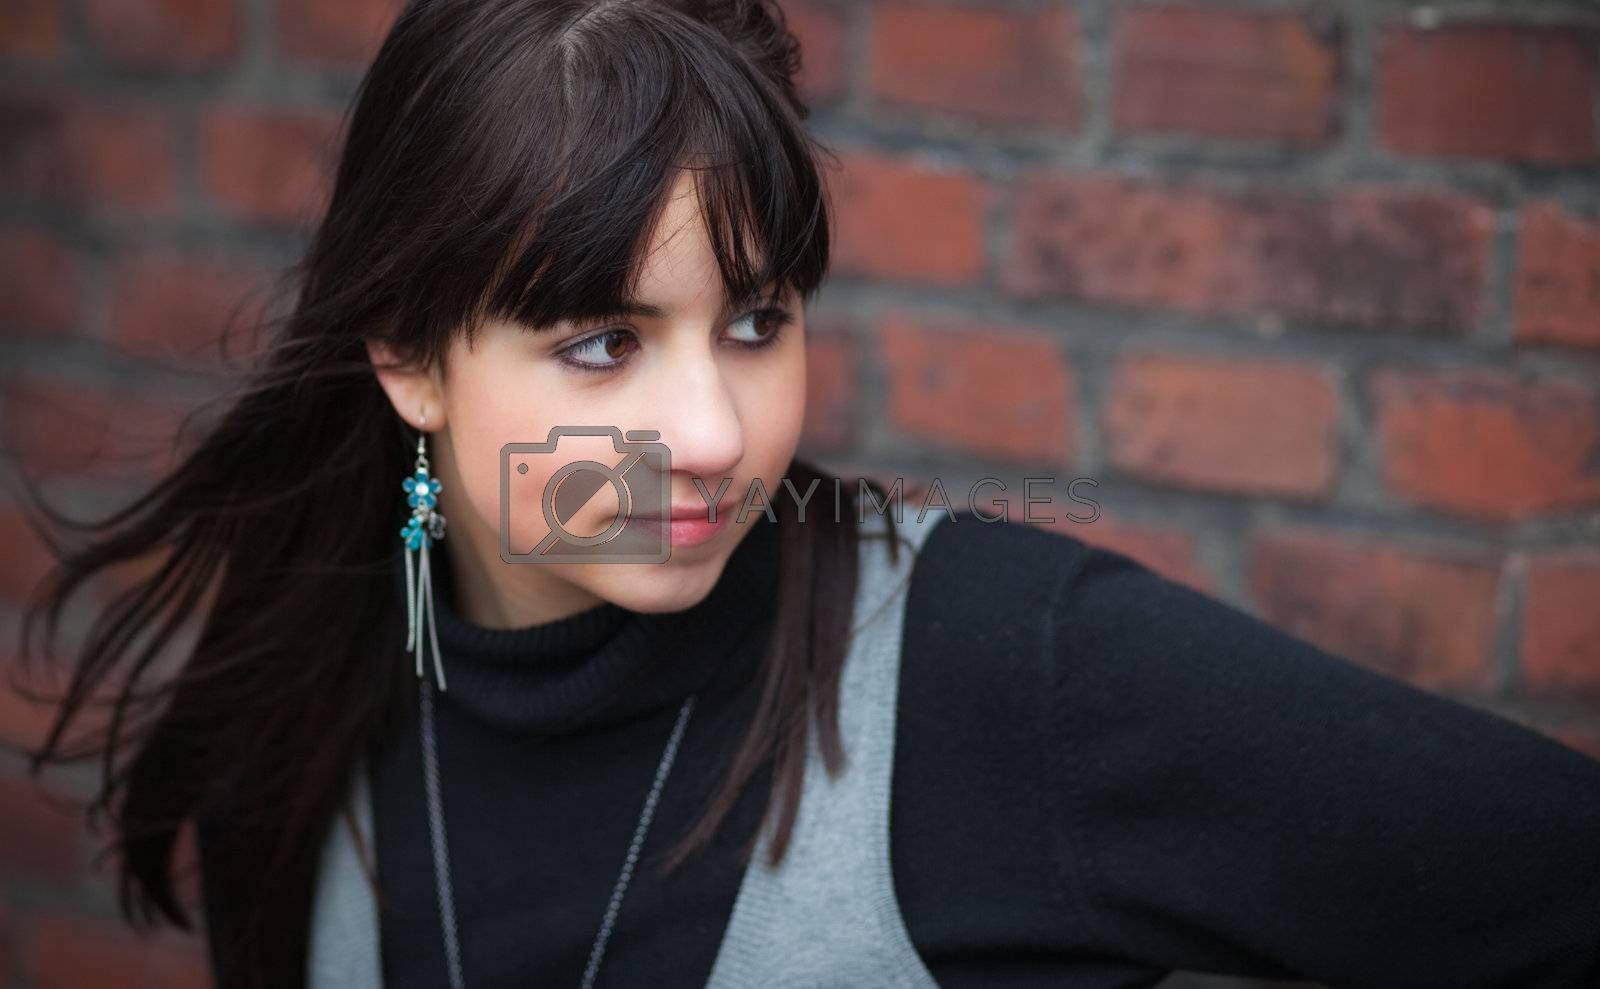 Pensive brunette girl against a red brick wall; blurred background